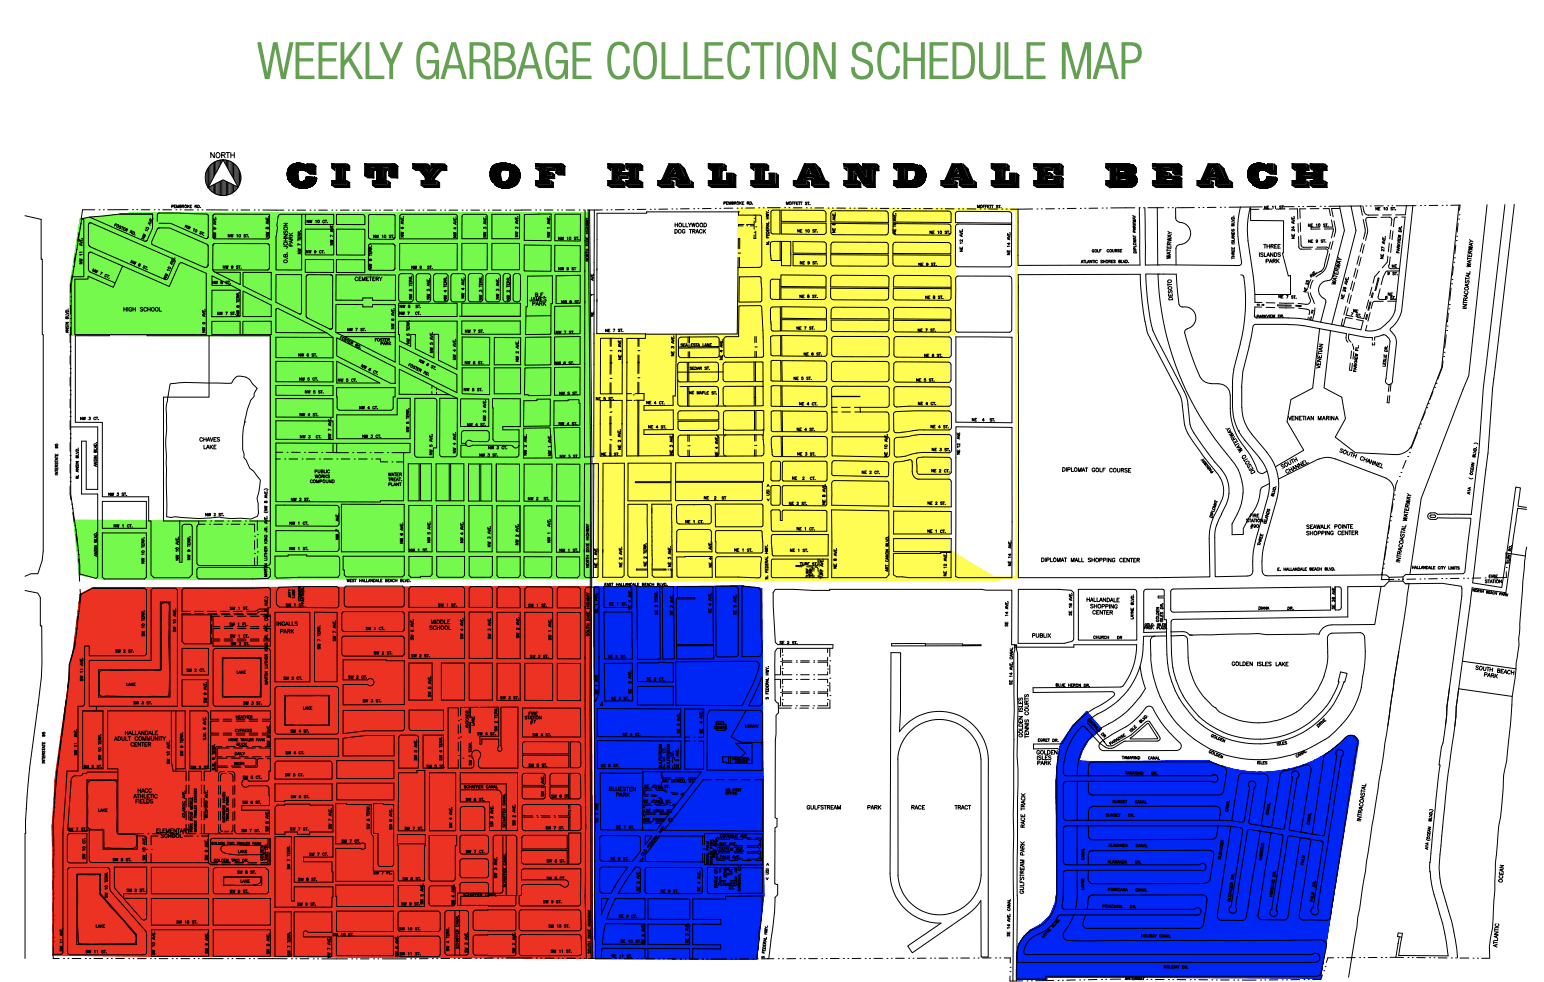 COLLECTION MAP